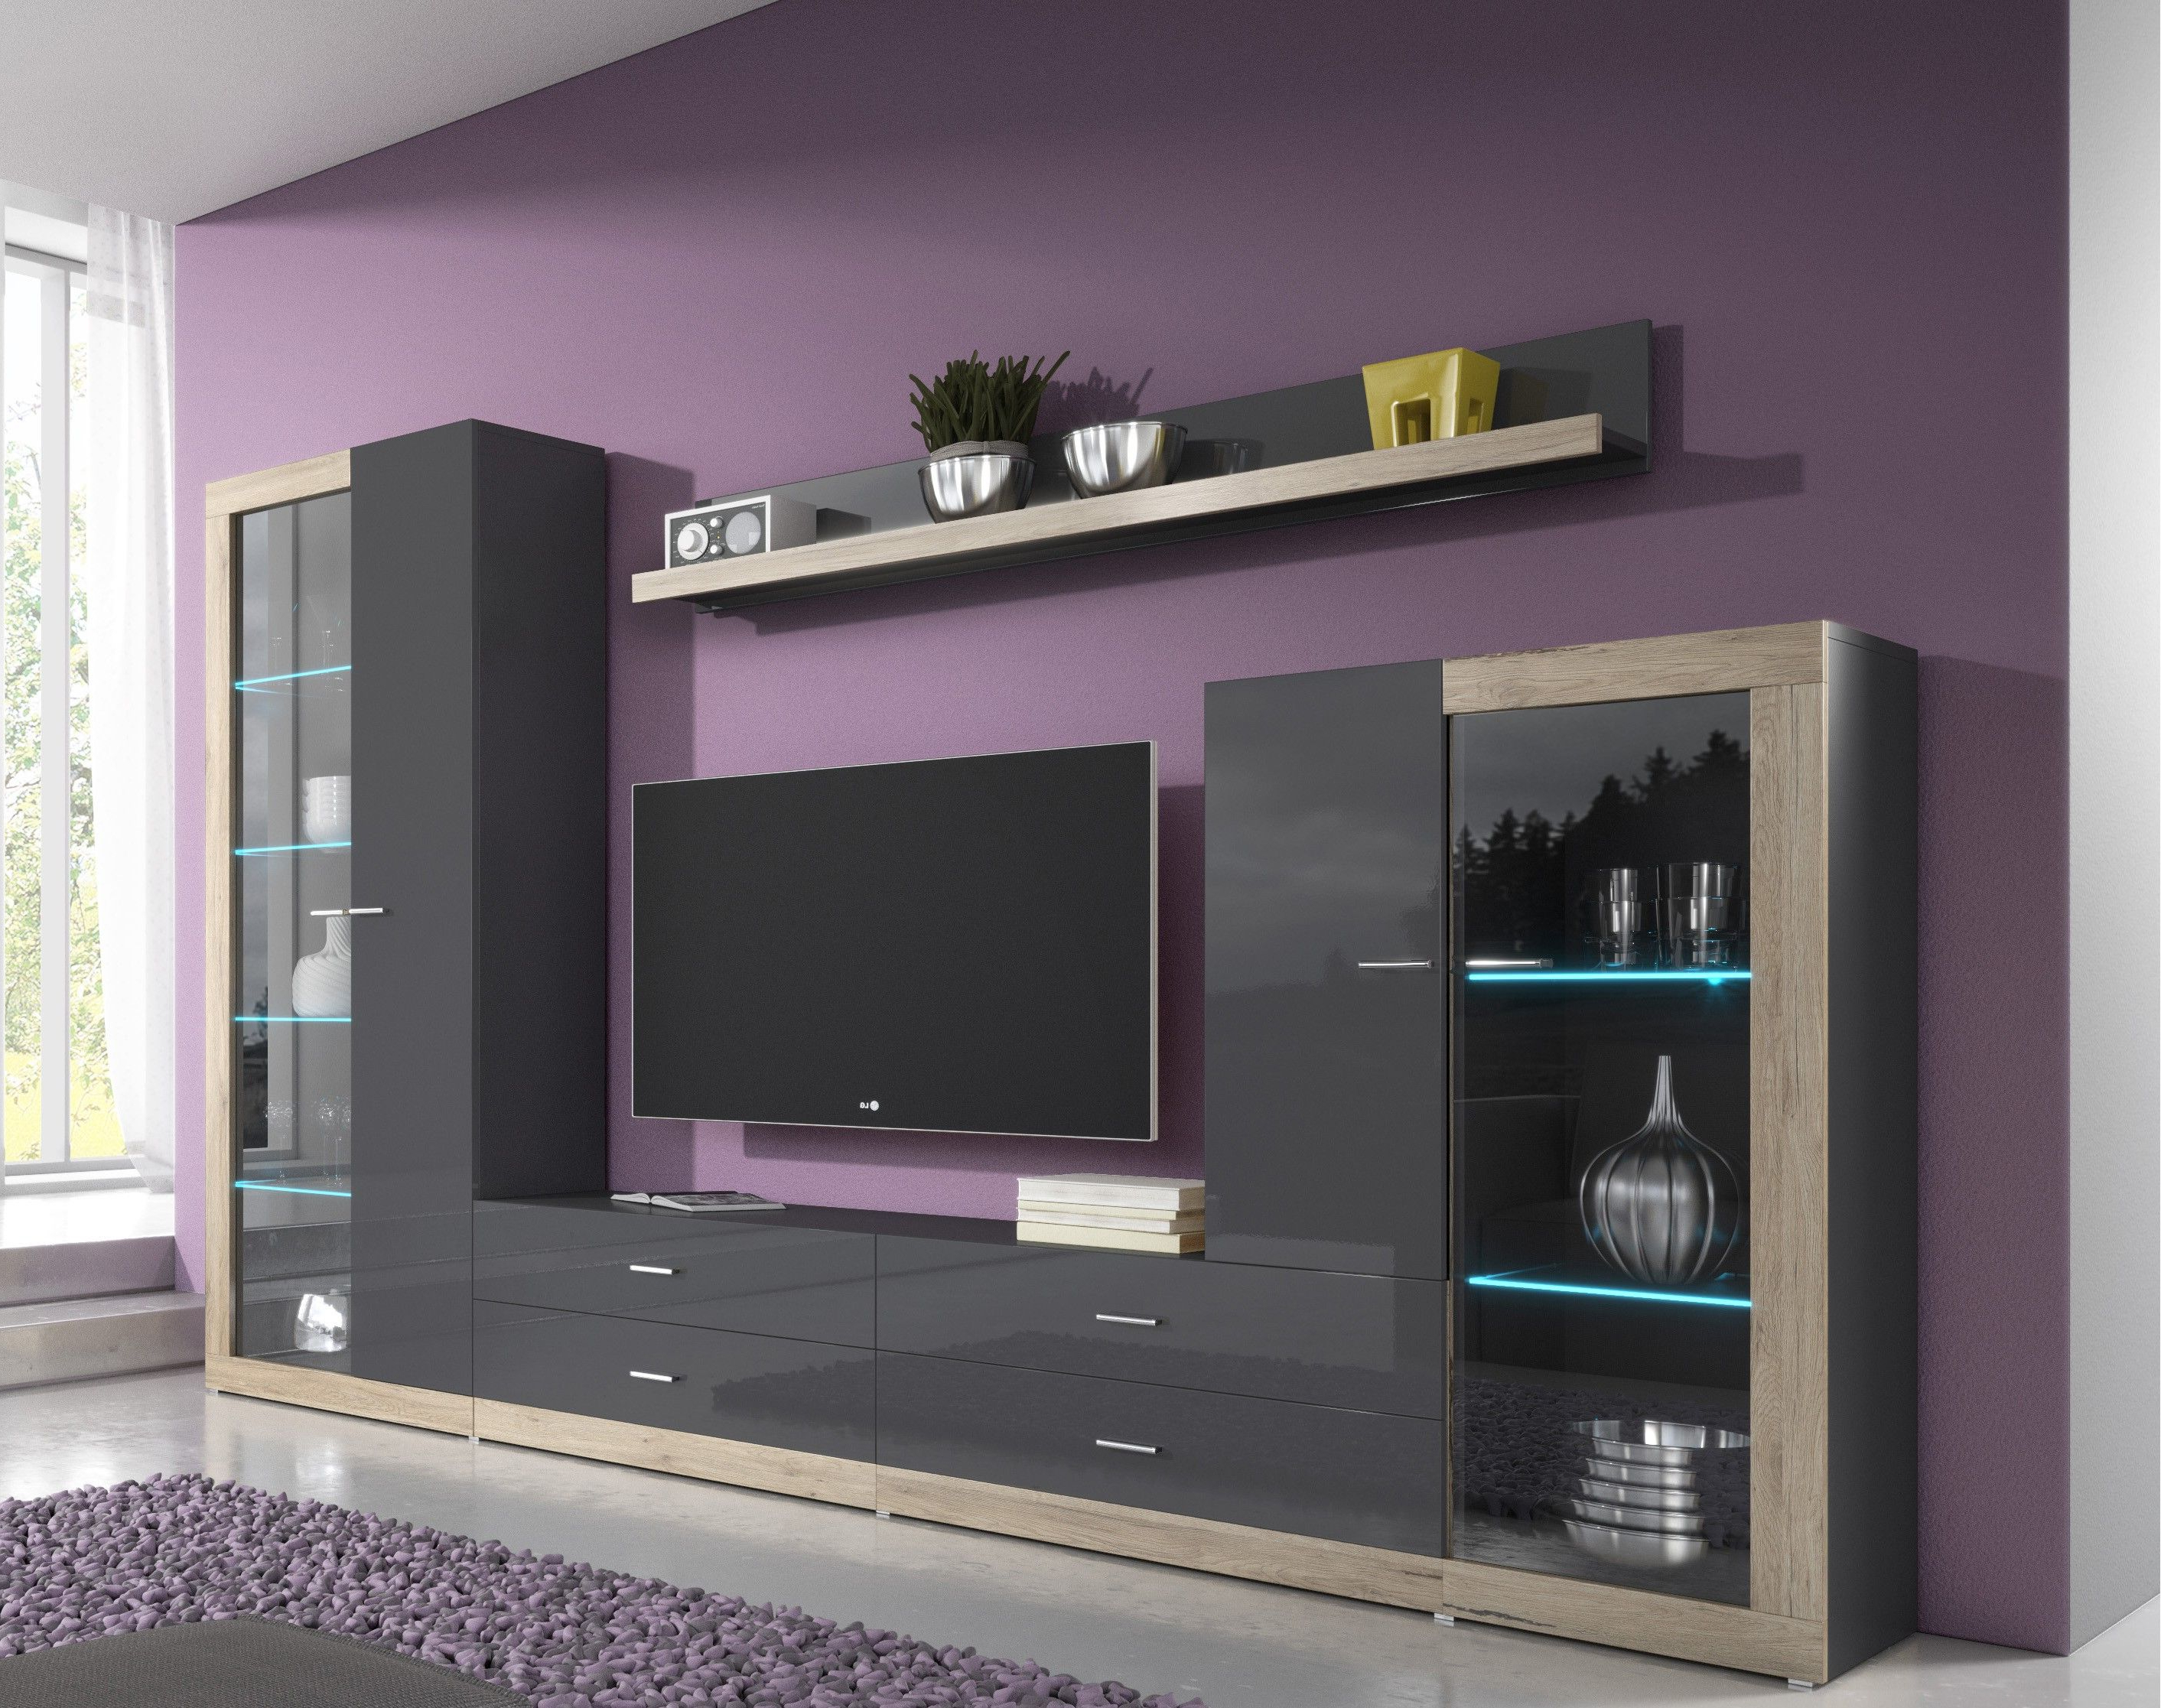 Tv Unit Storage (View 18 of 20)